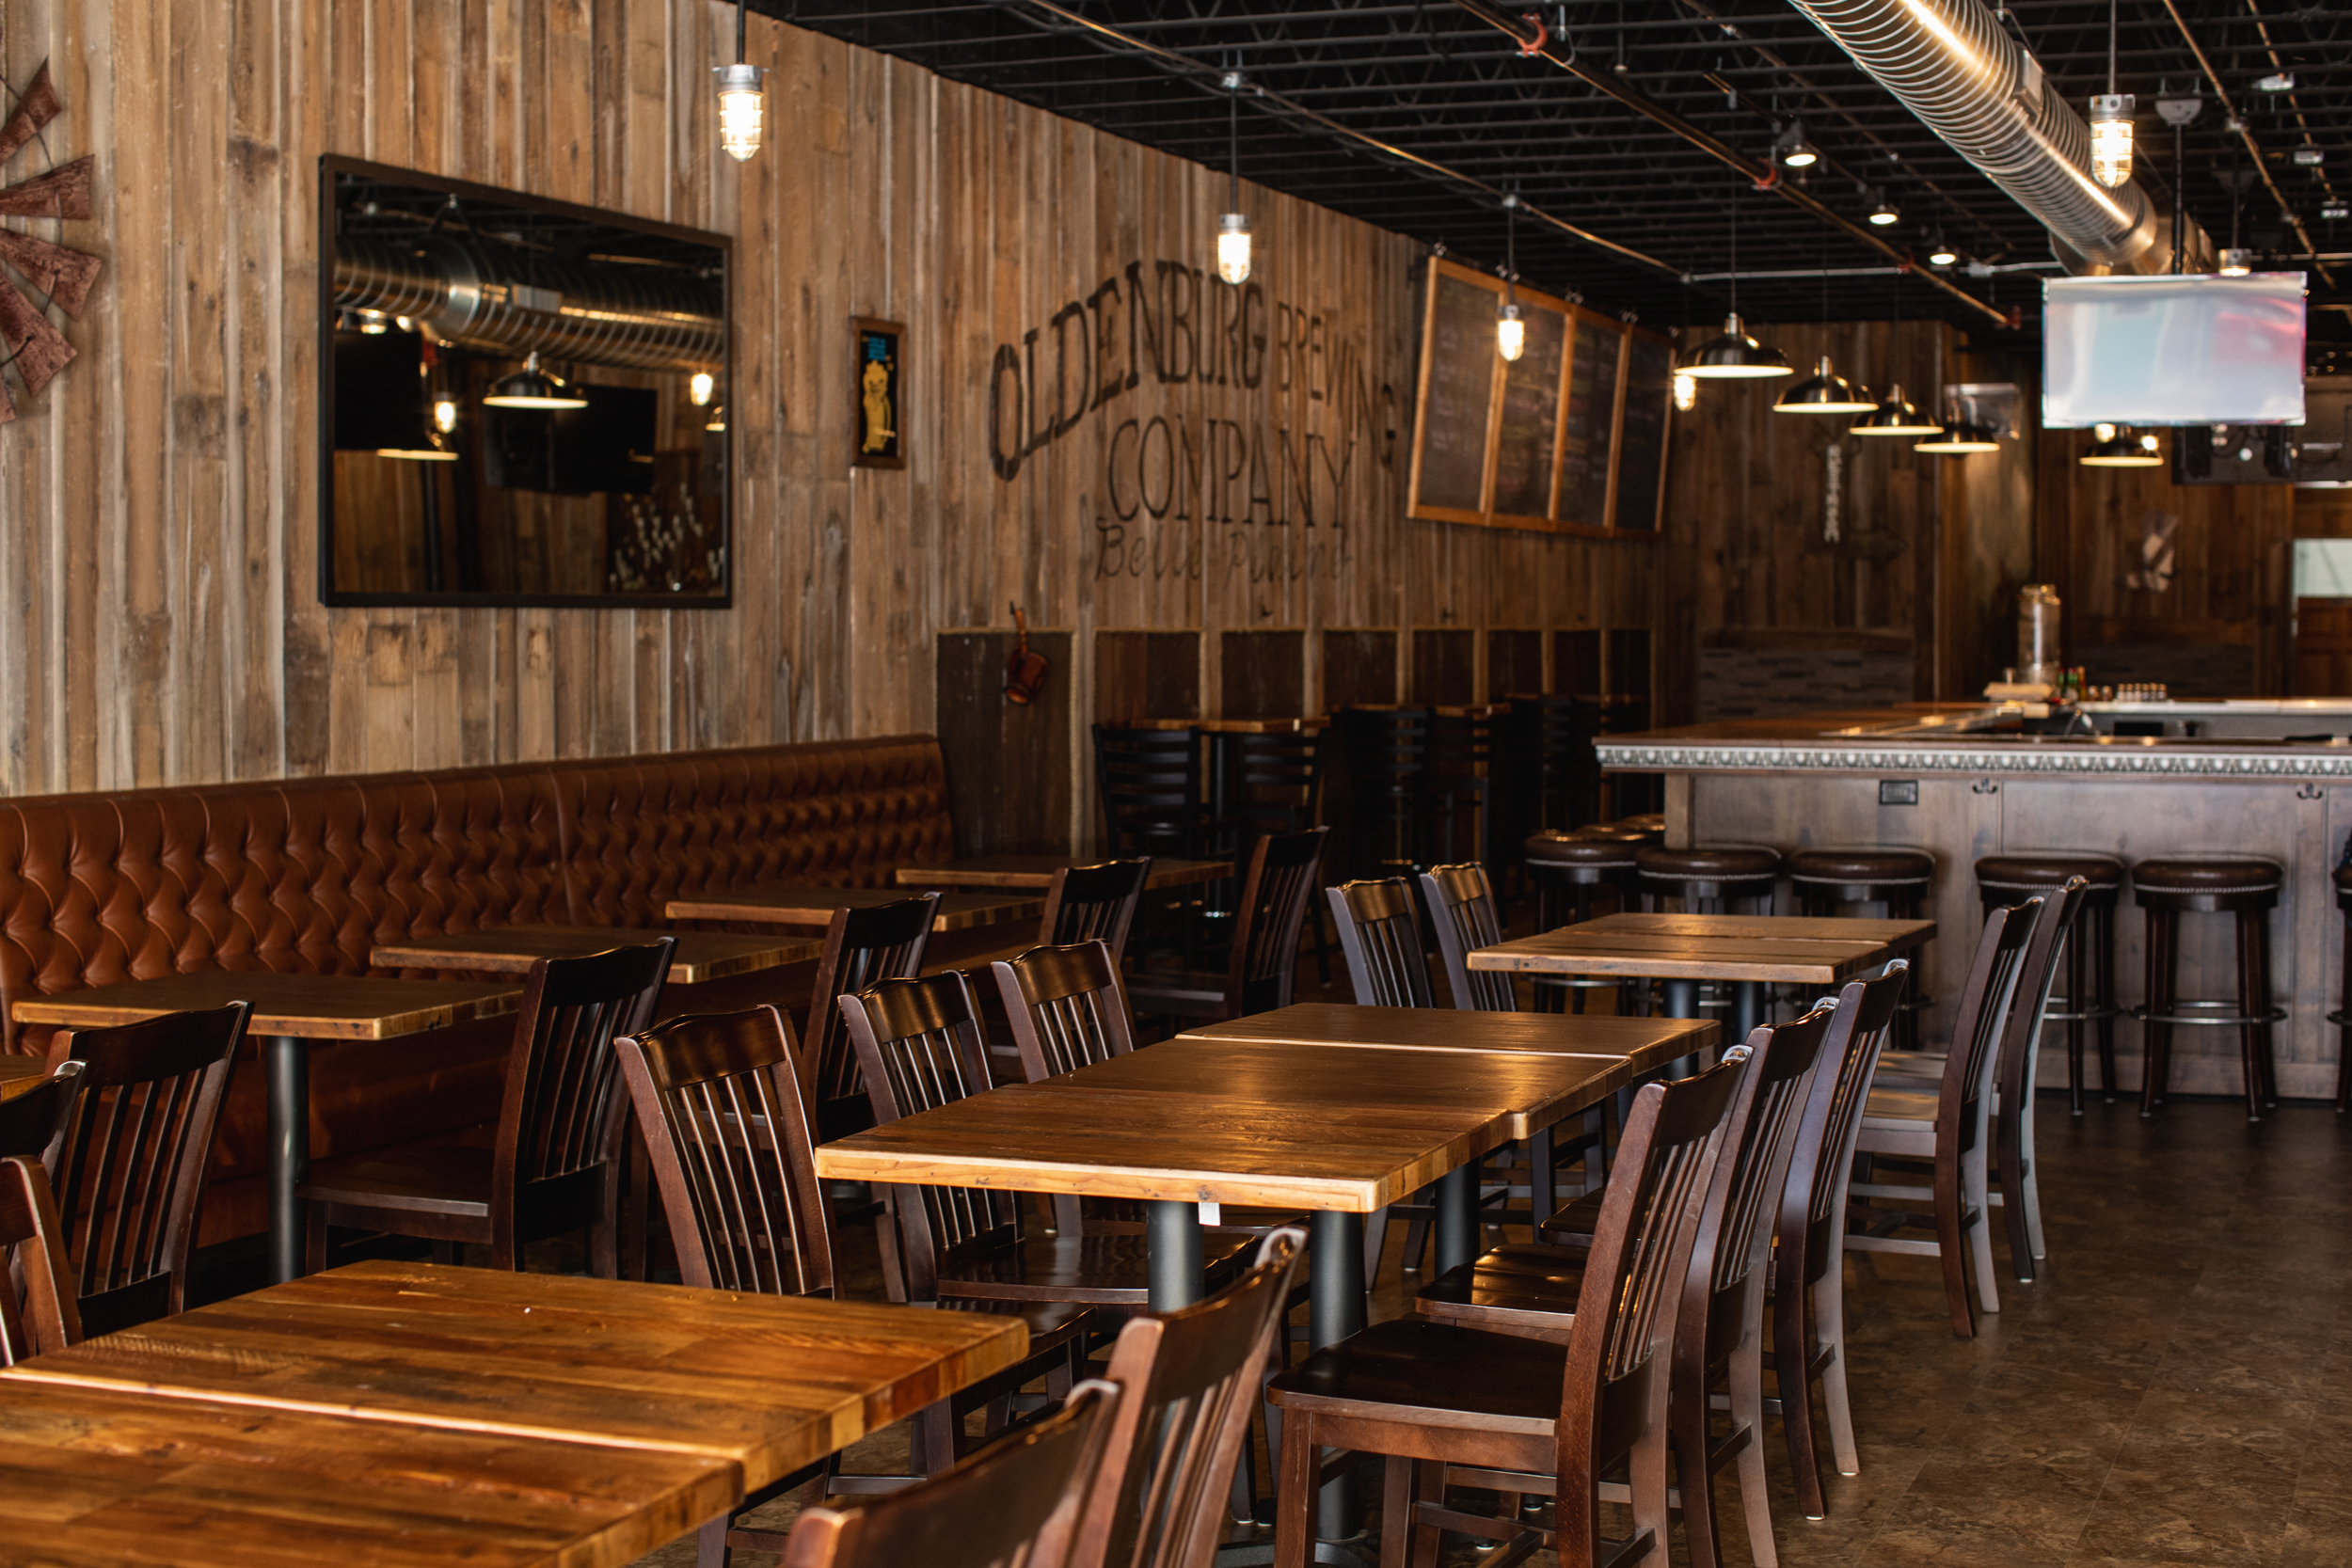 Oldenburg was just one of the brewpubs that opened in 2019 // Photo by Garrett Born